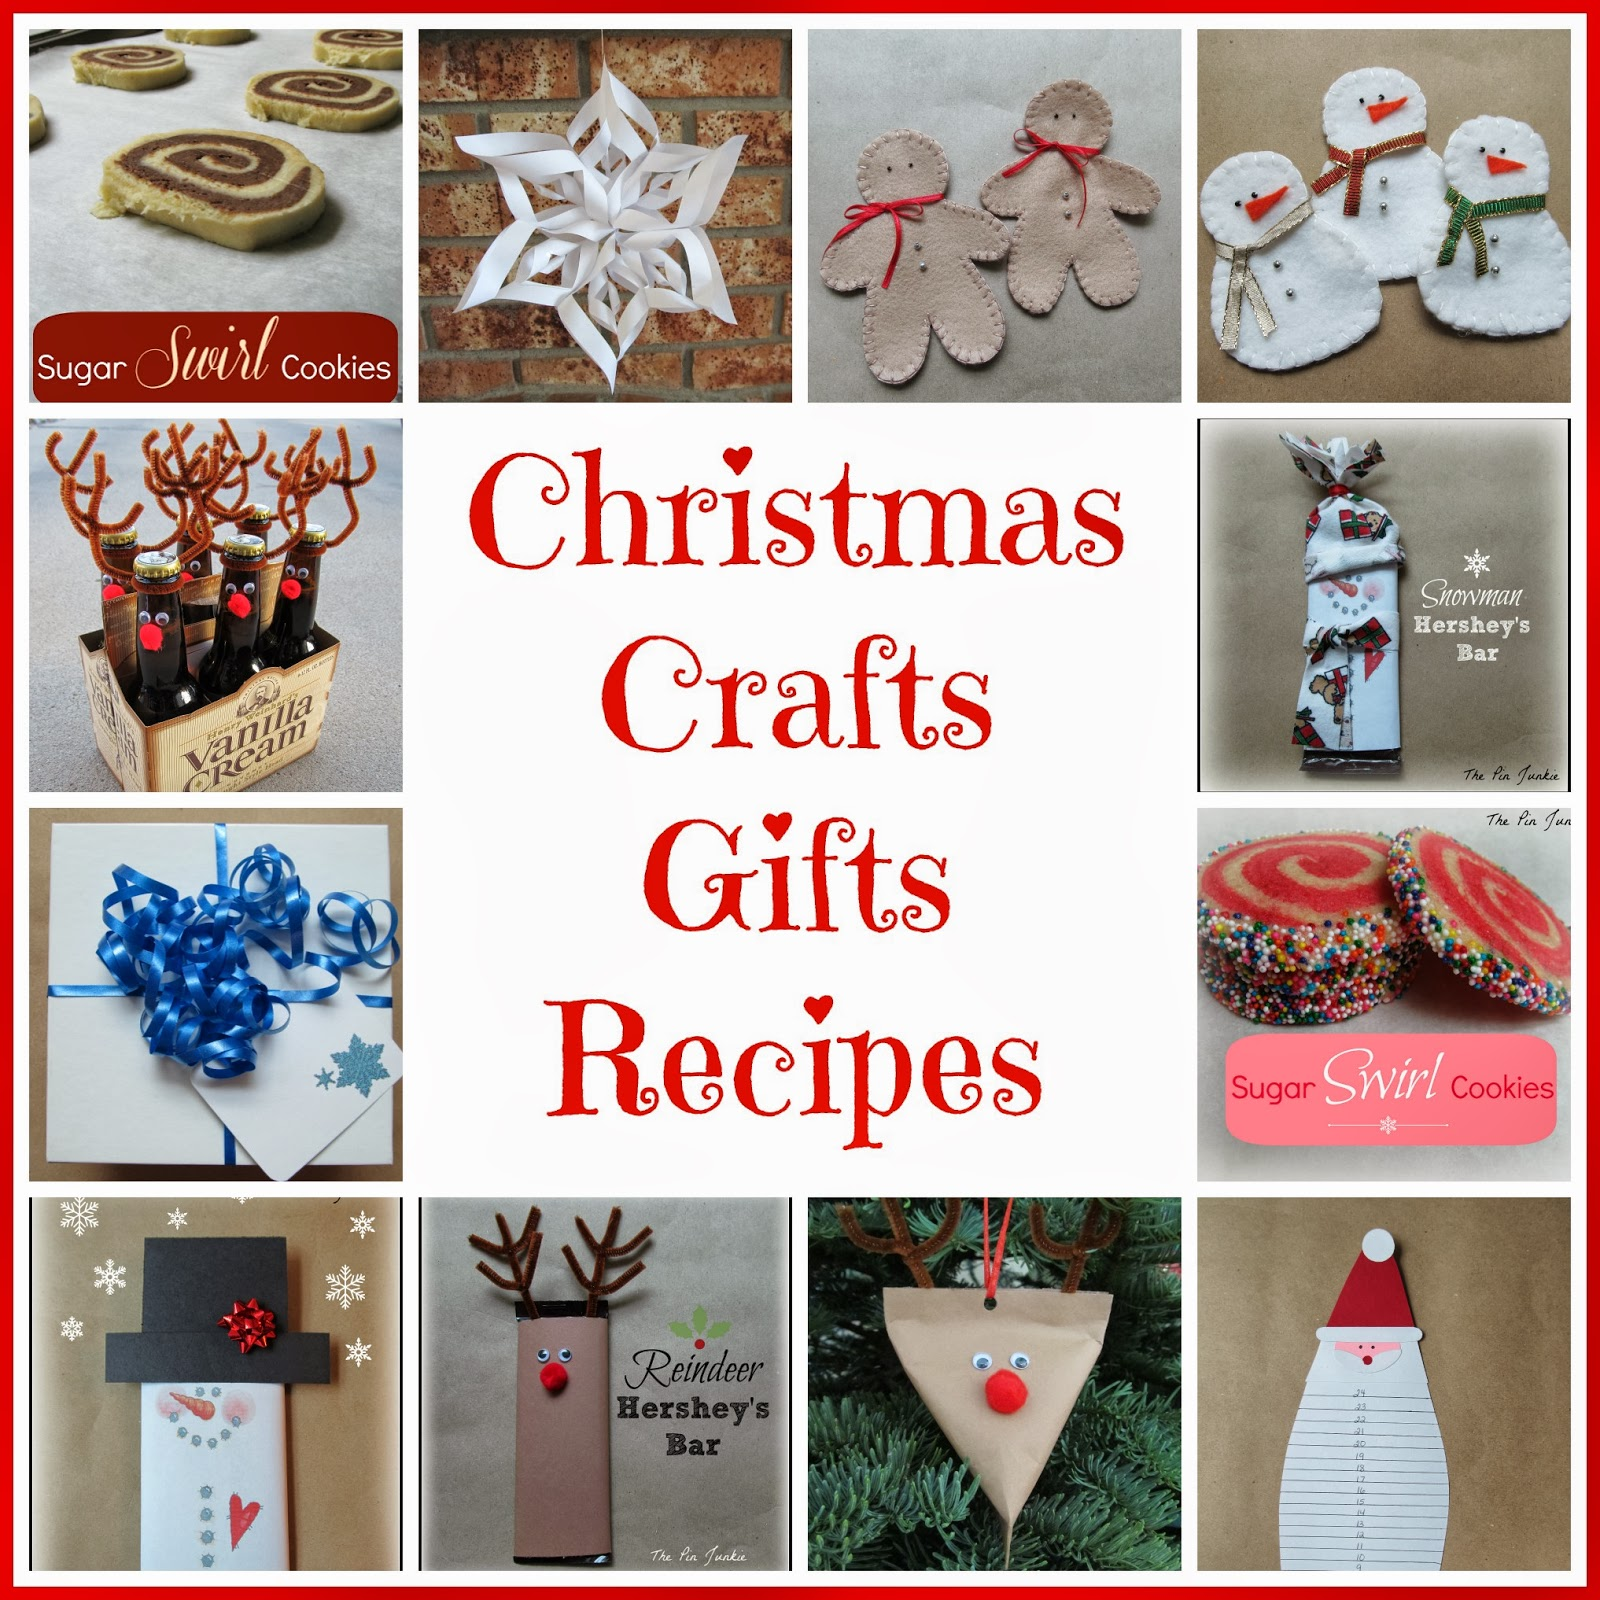 Christmas crafts gifts recipes for Christmas crafts and gifts